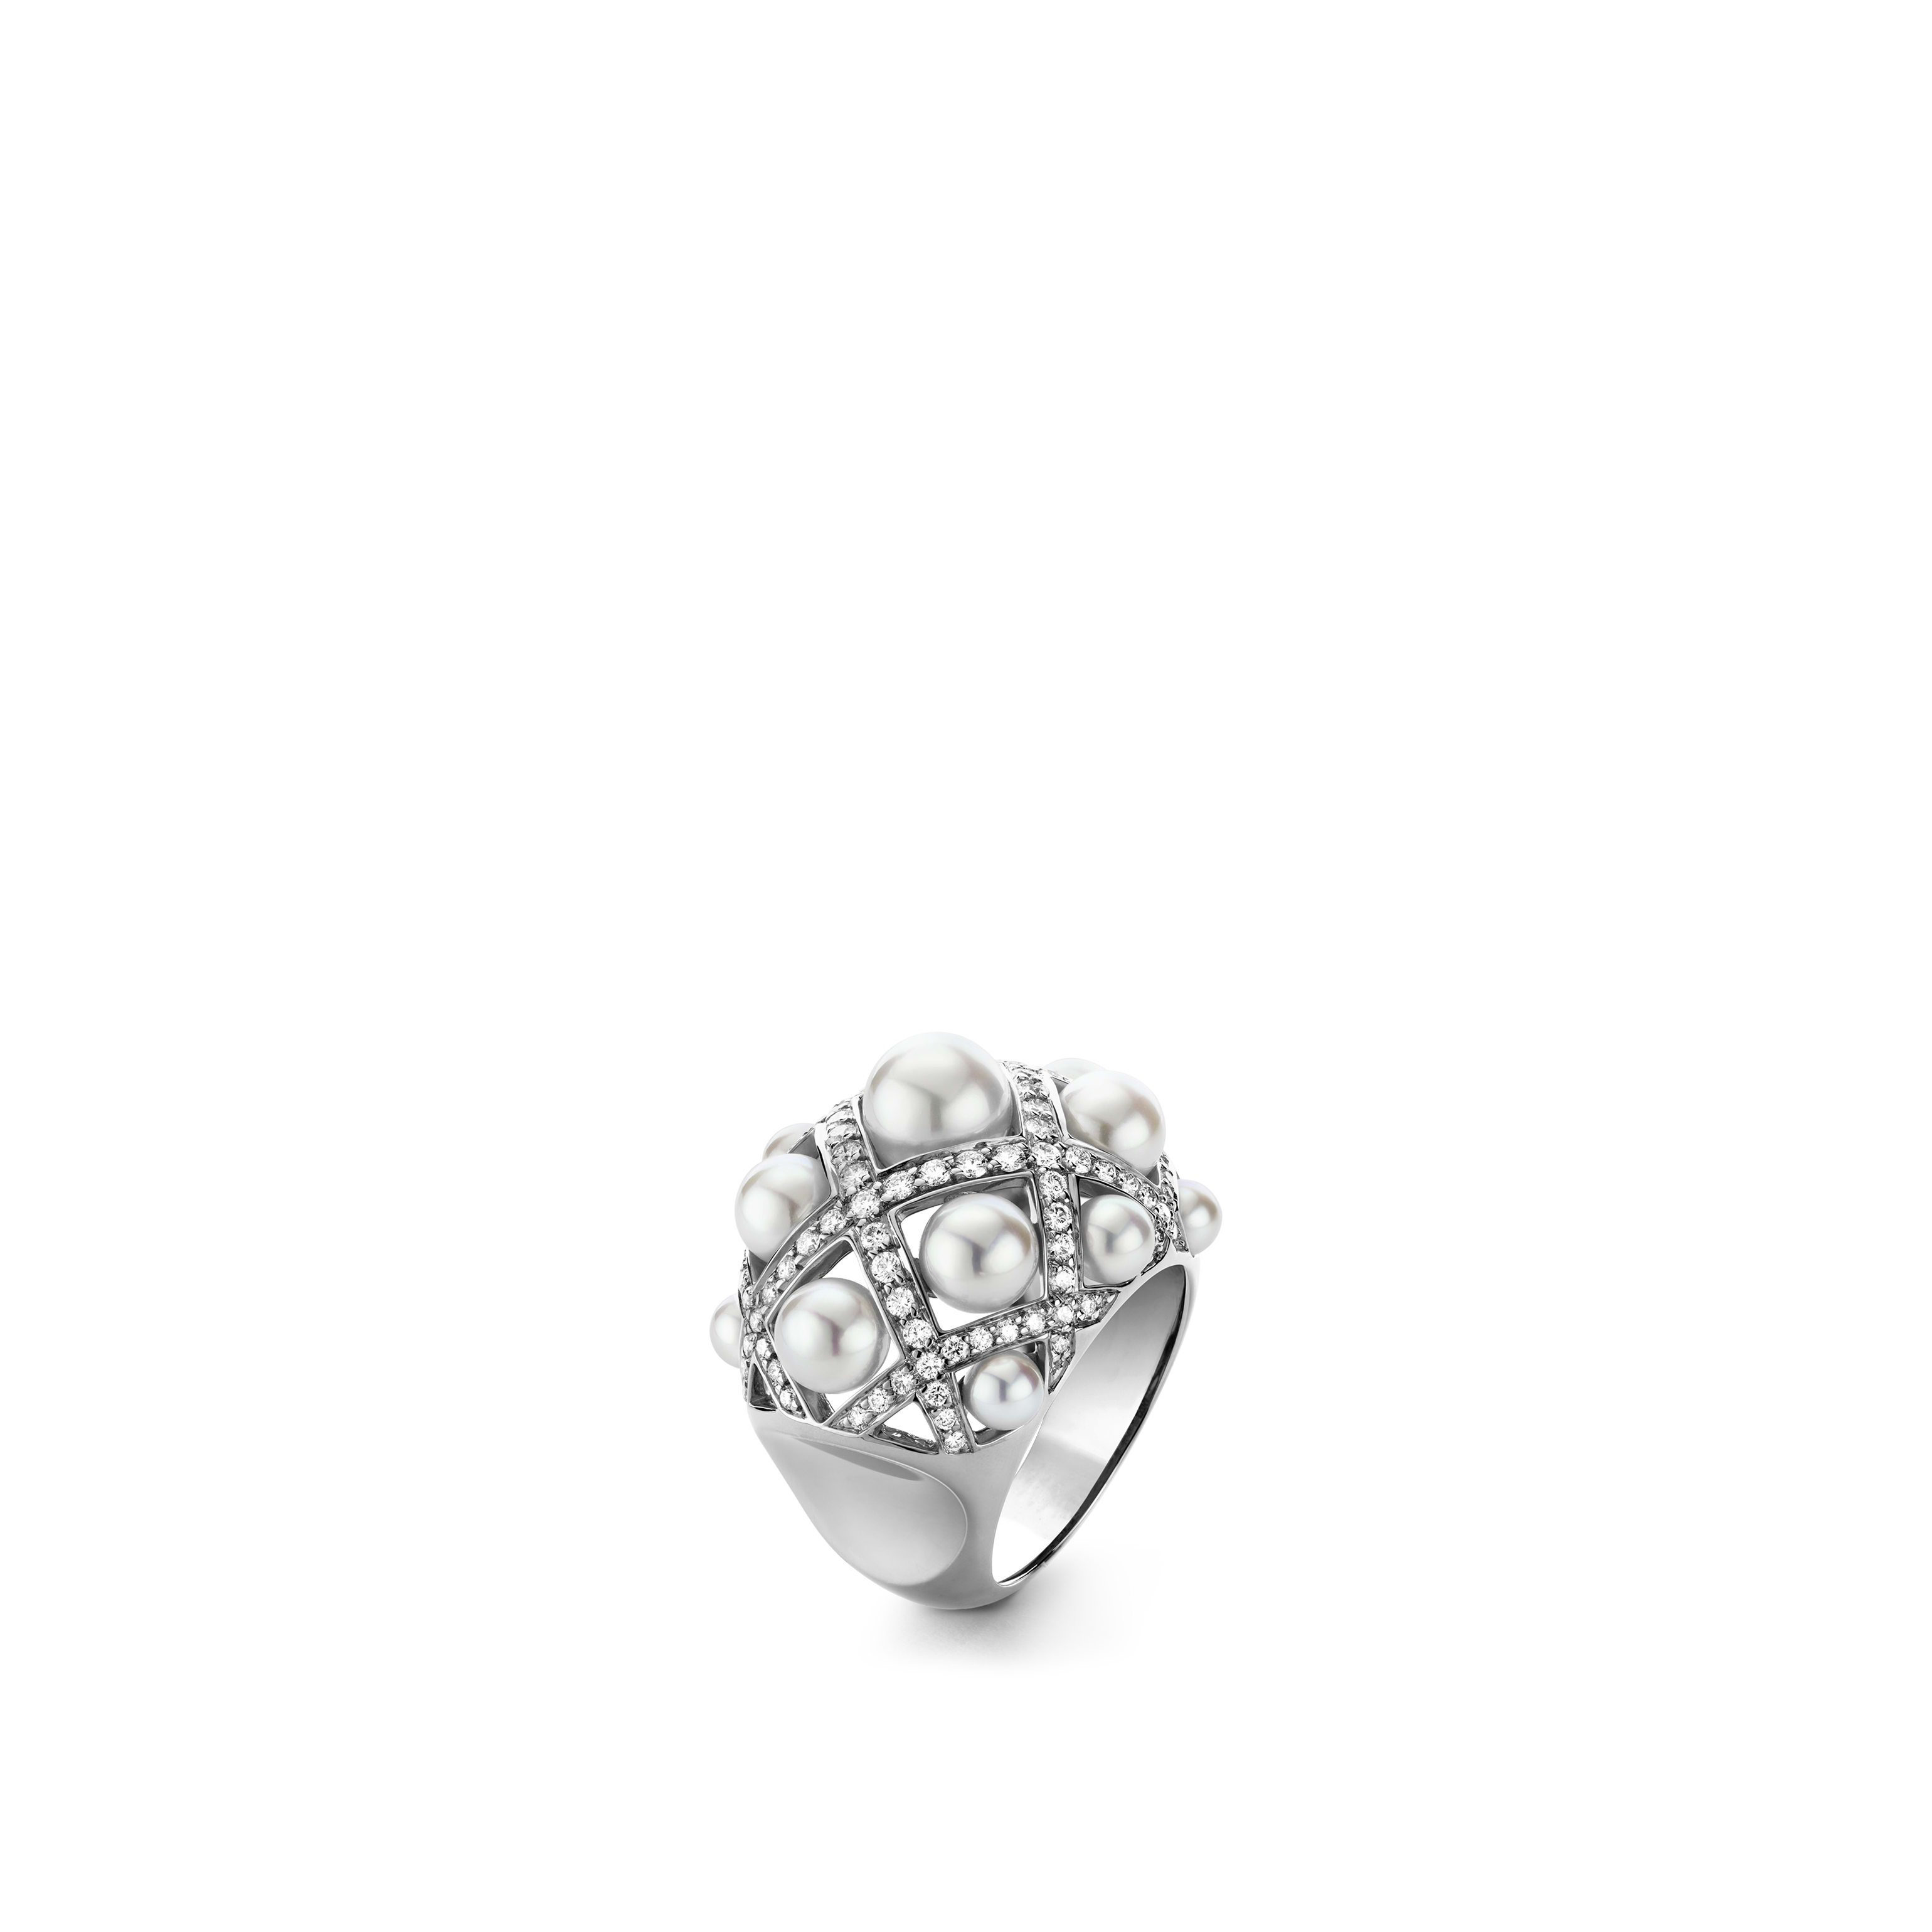 Perles Matelassé ring - Large version, 18K white gold, diamonds, cultured pearls - CHANEL - Default view - see standard sized version